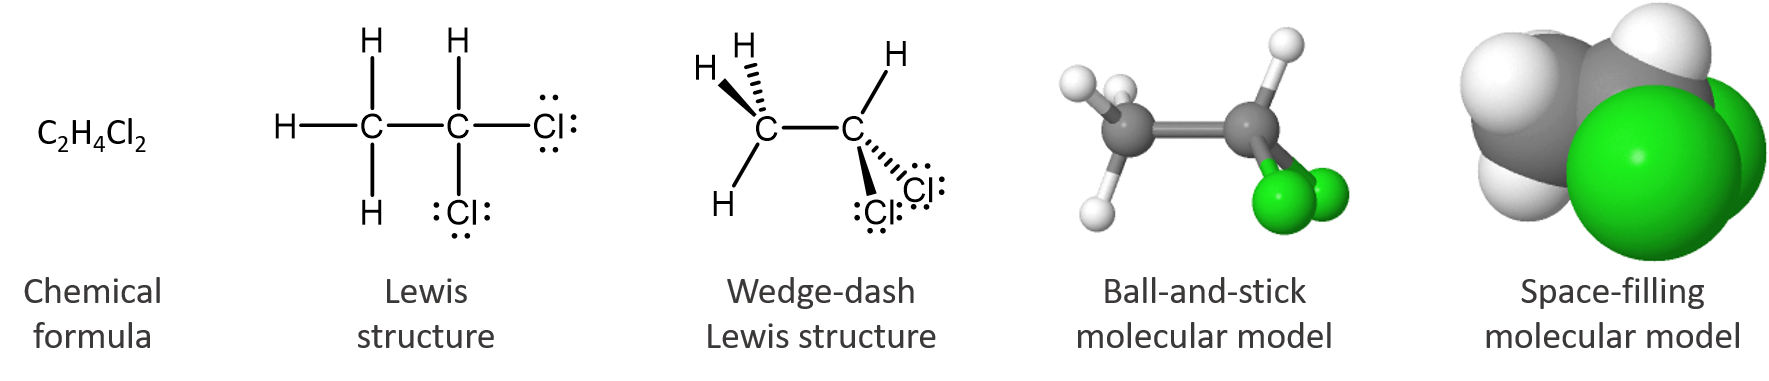 Image showing five structures of the same molecule with a label below each structure. First structure: C 2 H 4 Cl 2; labeled chemical formula. Second structure: H bond line C bond line C bond line Cl on a horizontal line; each C has a bond line and H above it; the left C has a bond line and H below it; the right C has a bond line and Cl below it; labeled Lewis structure. Third structure: two C atoms with horizontal bond line between; the left C has a bond line H below and to the left, a black, wedge-shaped bond to H up and to the left and a dashed wedge bond to H up and to the left; labeled Wedge-dash Lewis structure. Fourth structure: two gray spheres with a horizontal gray bond cylinder between; the left gray sphere has three bond cylinders, each with a white sphere (smaller than the gray one)l; one bond cylinder goes down and to the left; two bond cylinders go up and to the left, one in front of the other; on the right gray sphere one bond cylinder goes up and to the right to a white sphere; two bond cylinders, one in front of the other go down and to the right each to a green sphere larger than the gray spheres; labeled Ball and stick molecular model. Fifth structure: similar to the fourth structure except that the spheres are all about 4 times larger and overlap with each other.